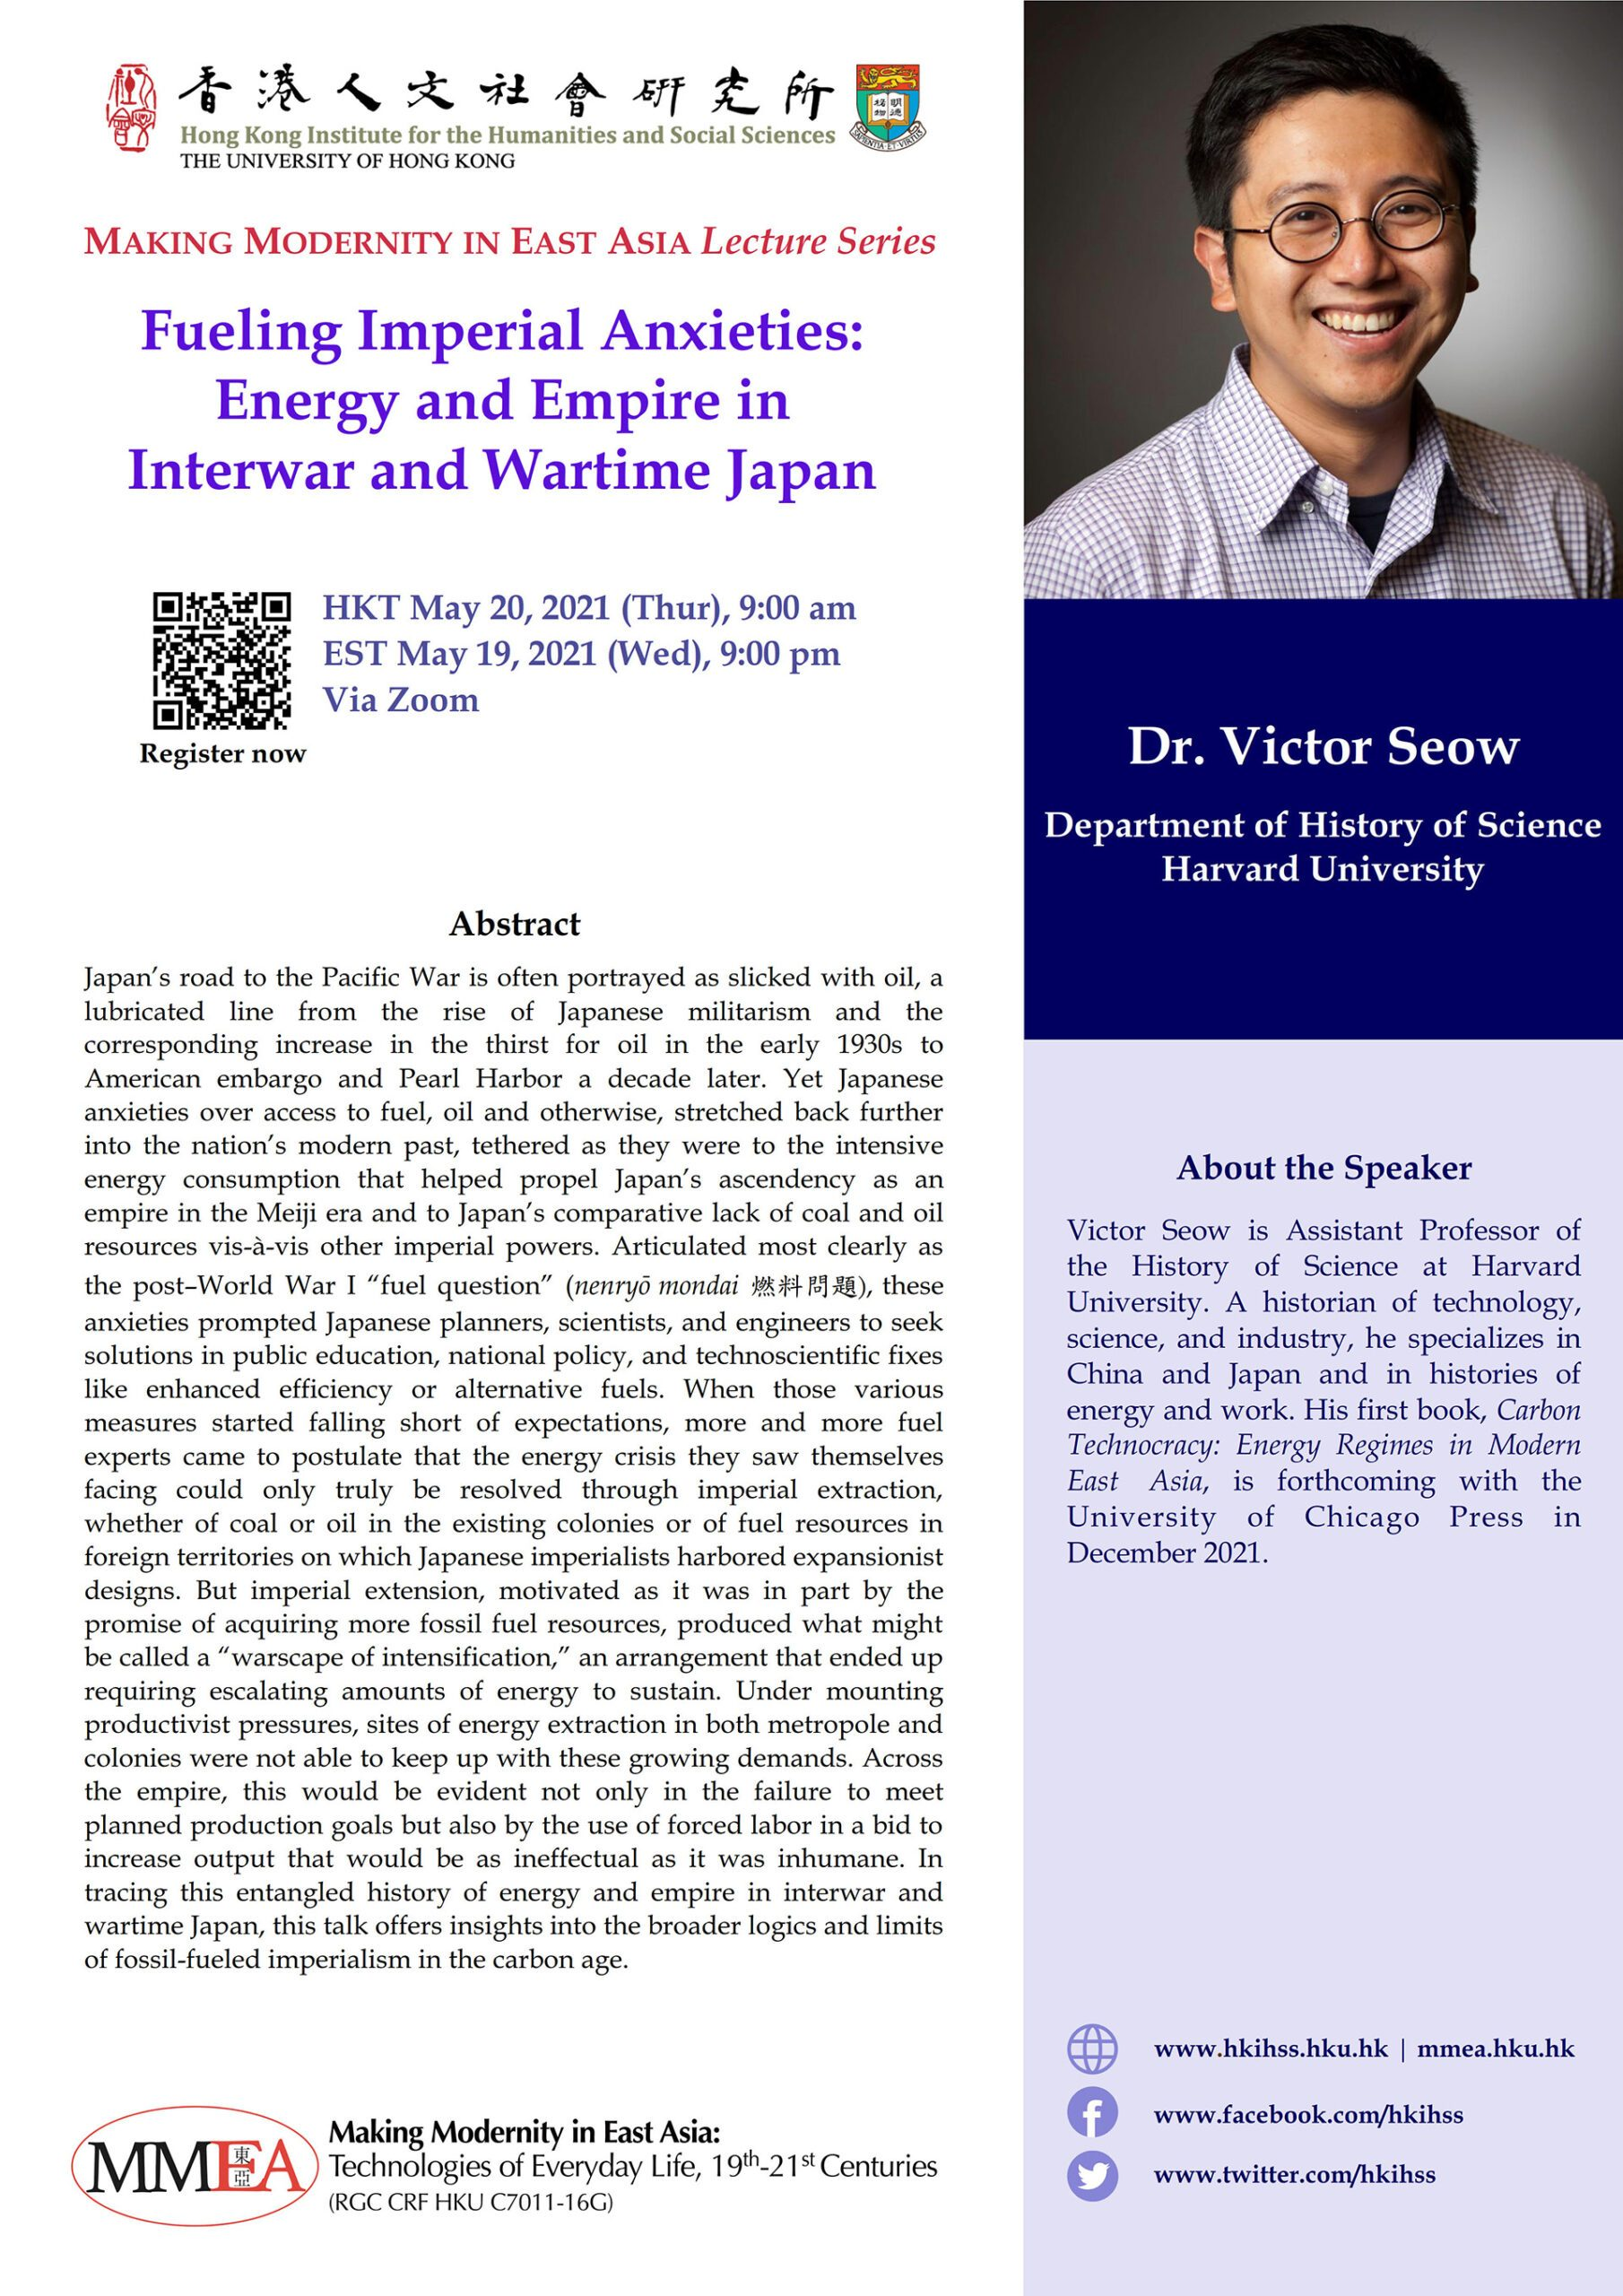 """MMEA Lecture Series """"Fueling Imperial Anxieties: Energy and Empire in Interwar and Wartime Japan"""" by Dr. Victor Seow (May 20, 2021)"""